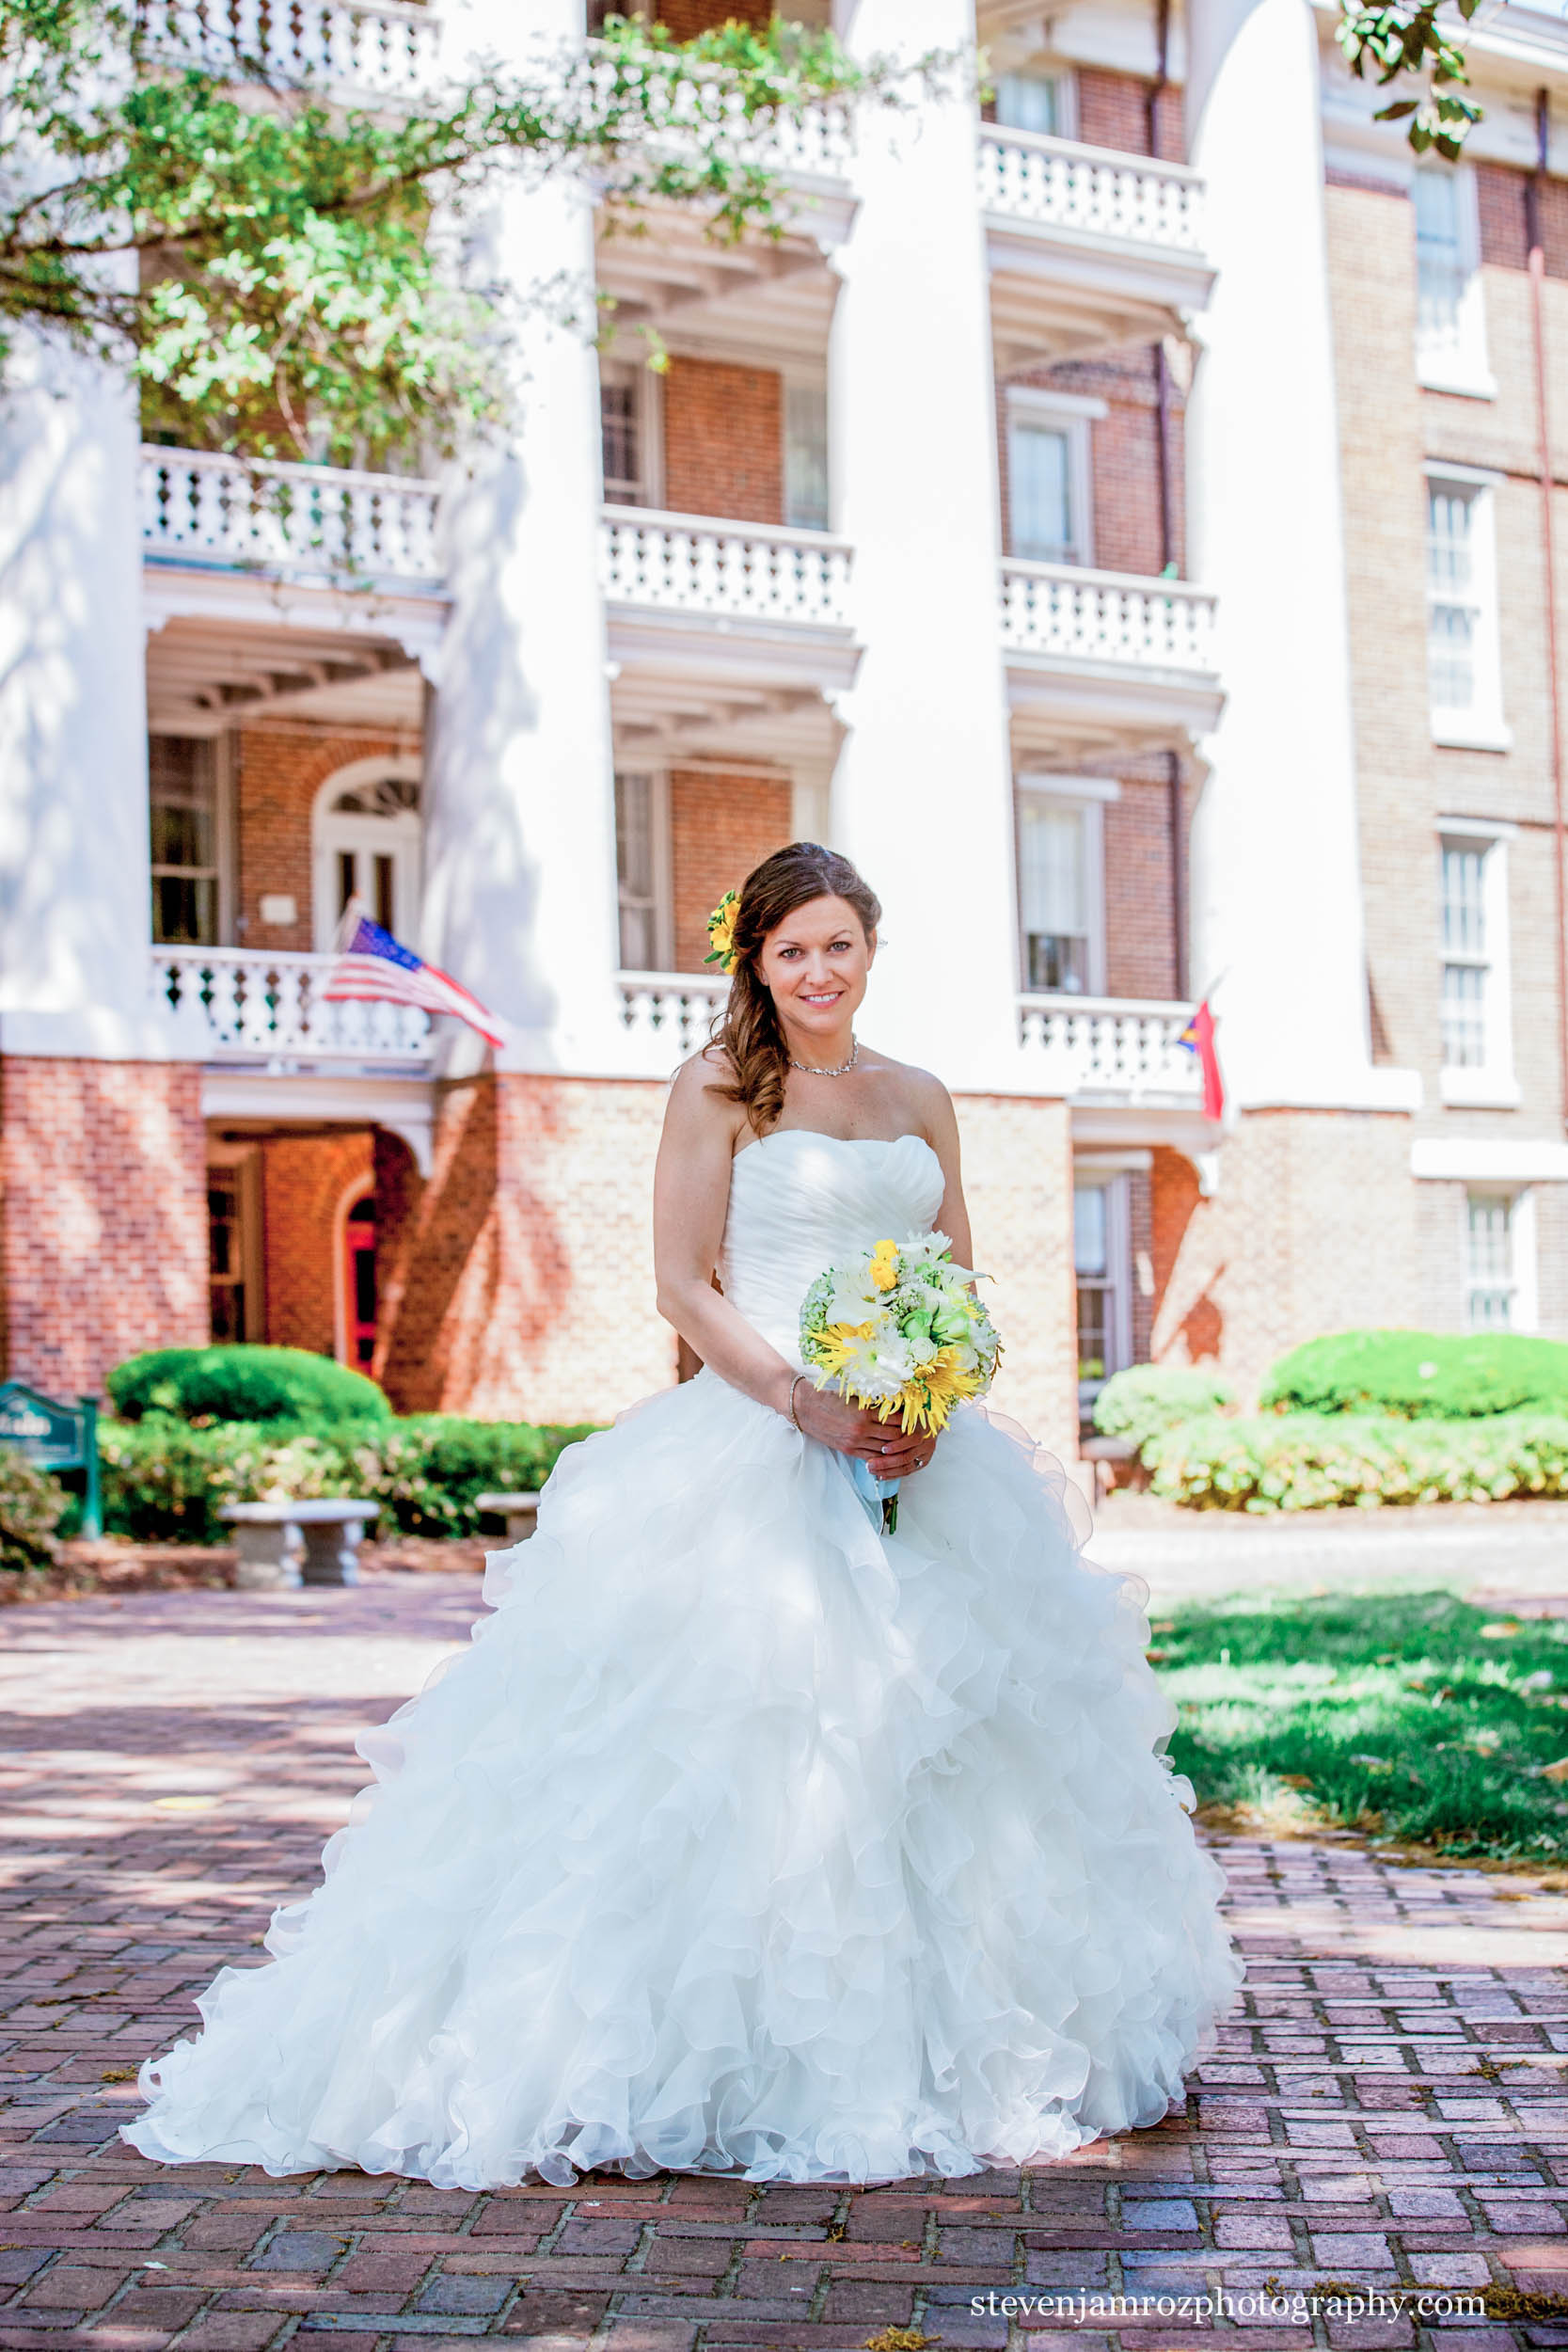 portrait-front-peace-college-raleigh-nc-steven-jamroz-photography-0140.jpg